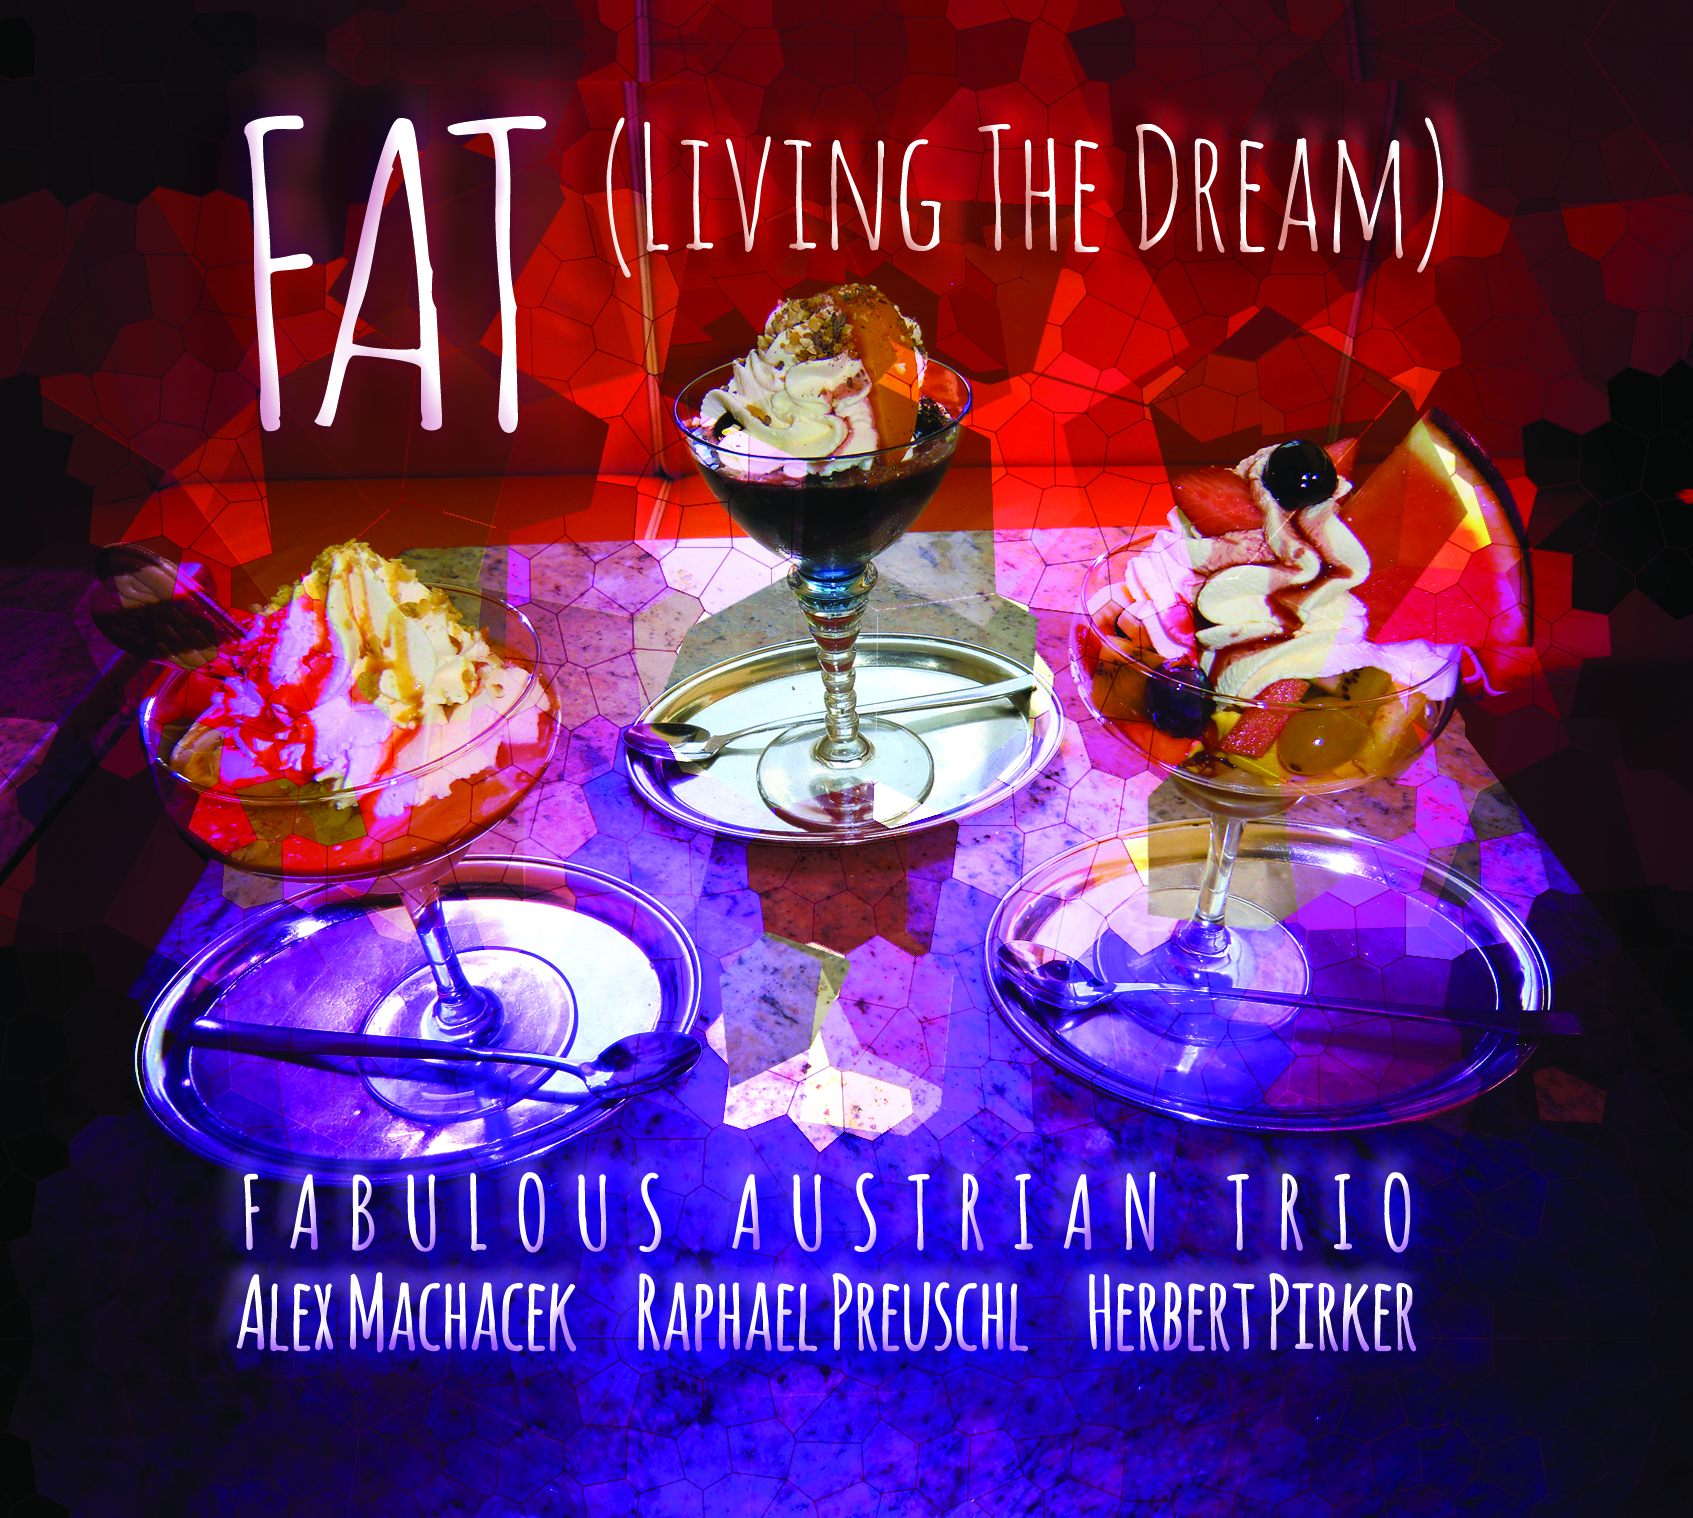 FAT-LivingTheDream-300dpi